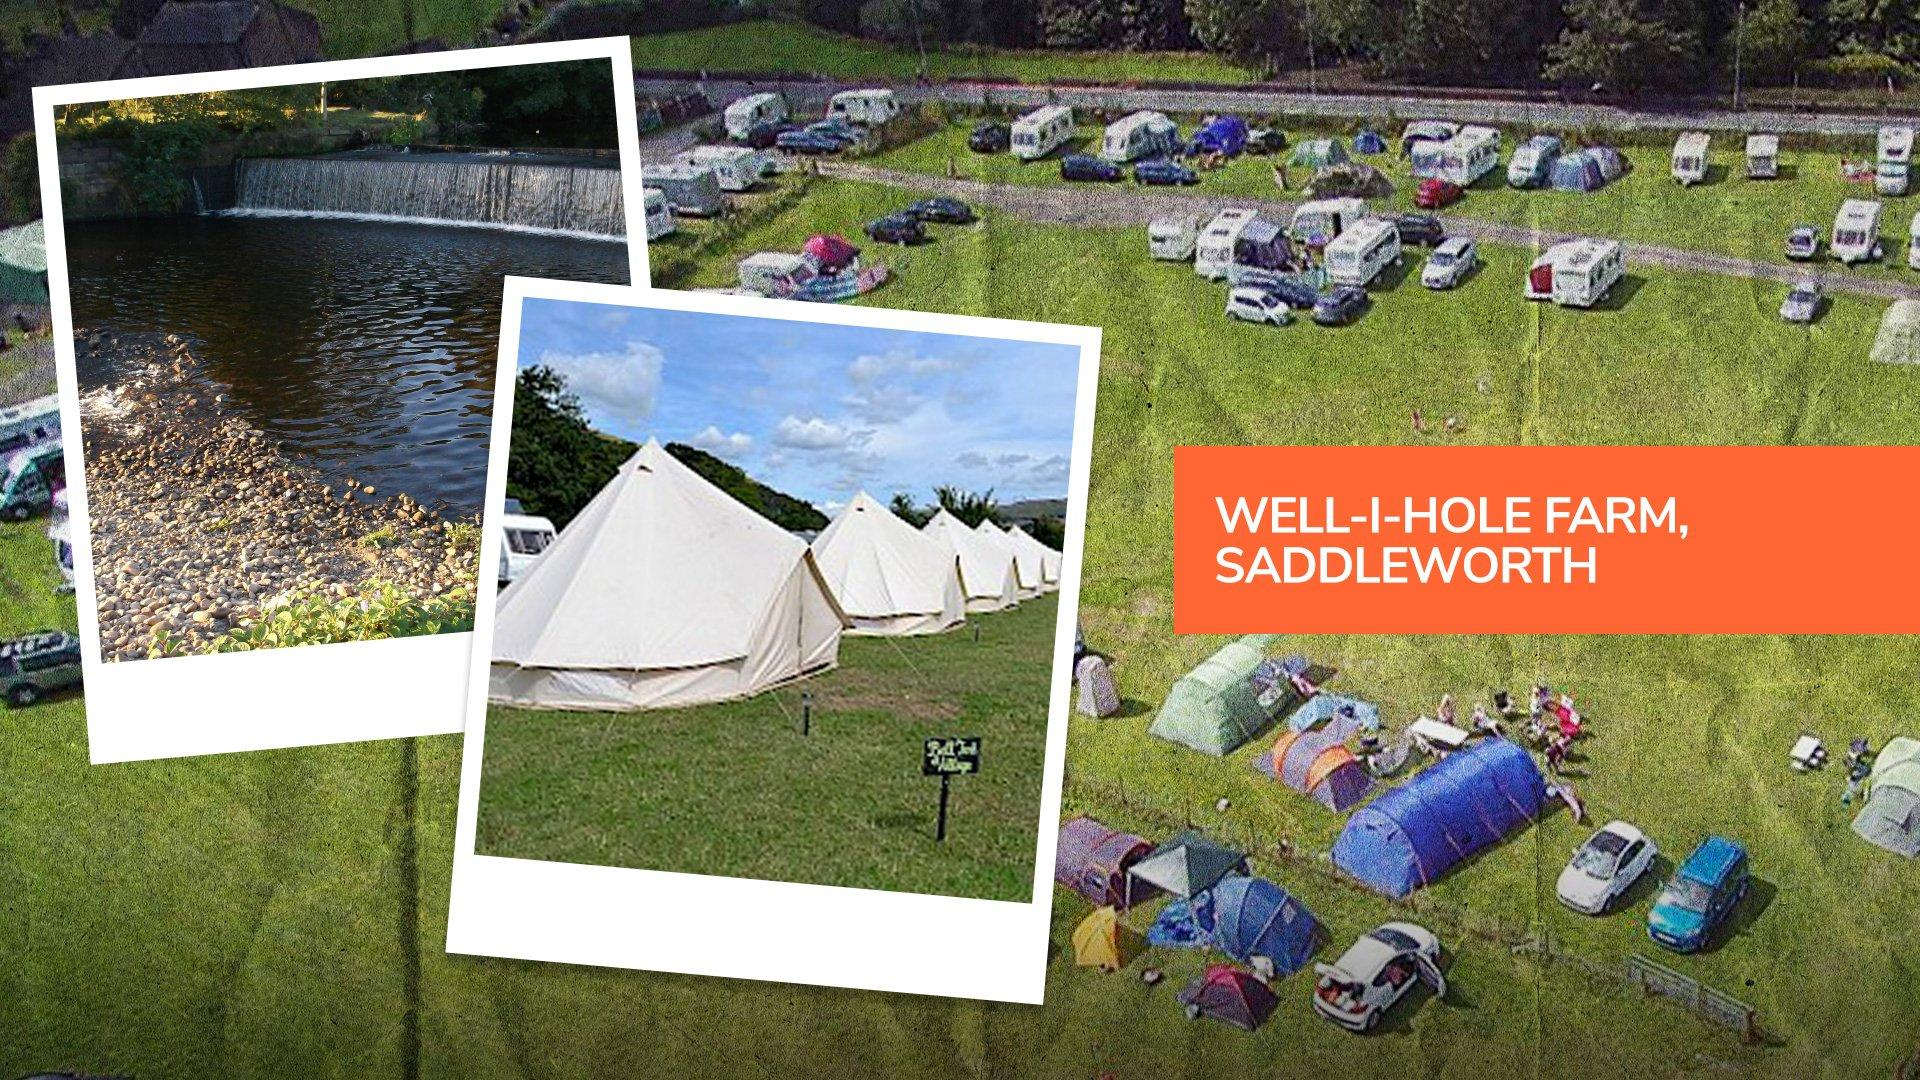 Well-i-Hole Farm in Saddleworth, a top campsite near Manchester